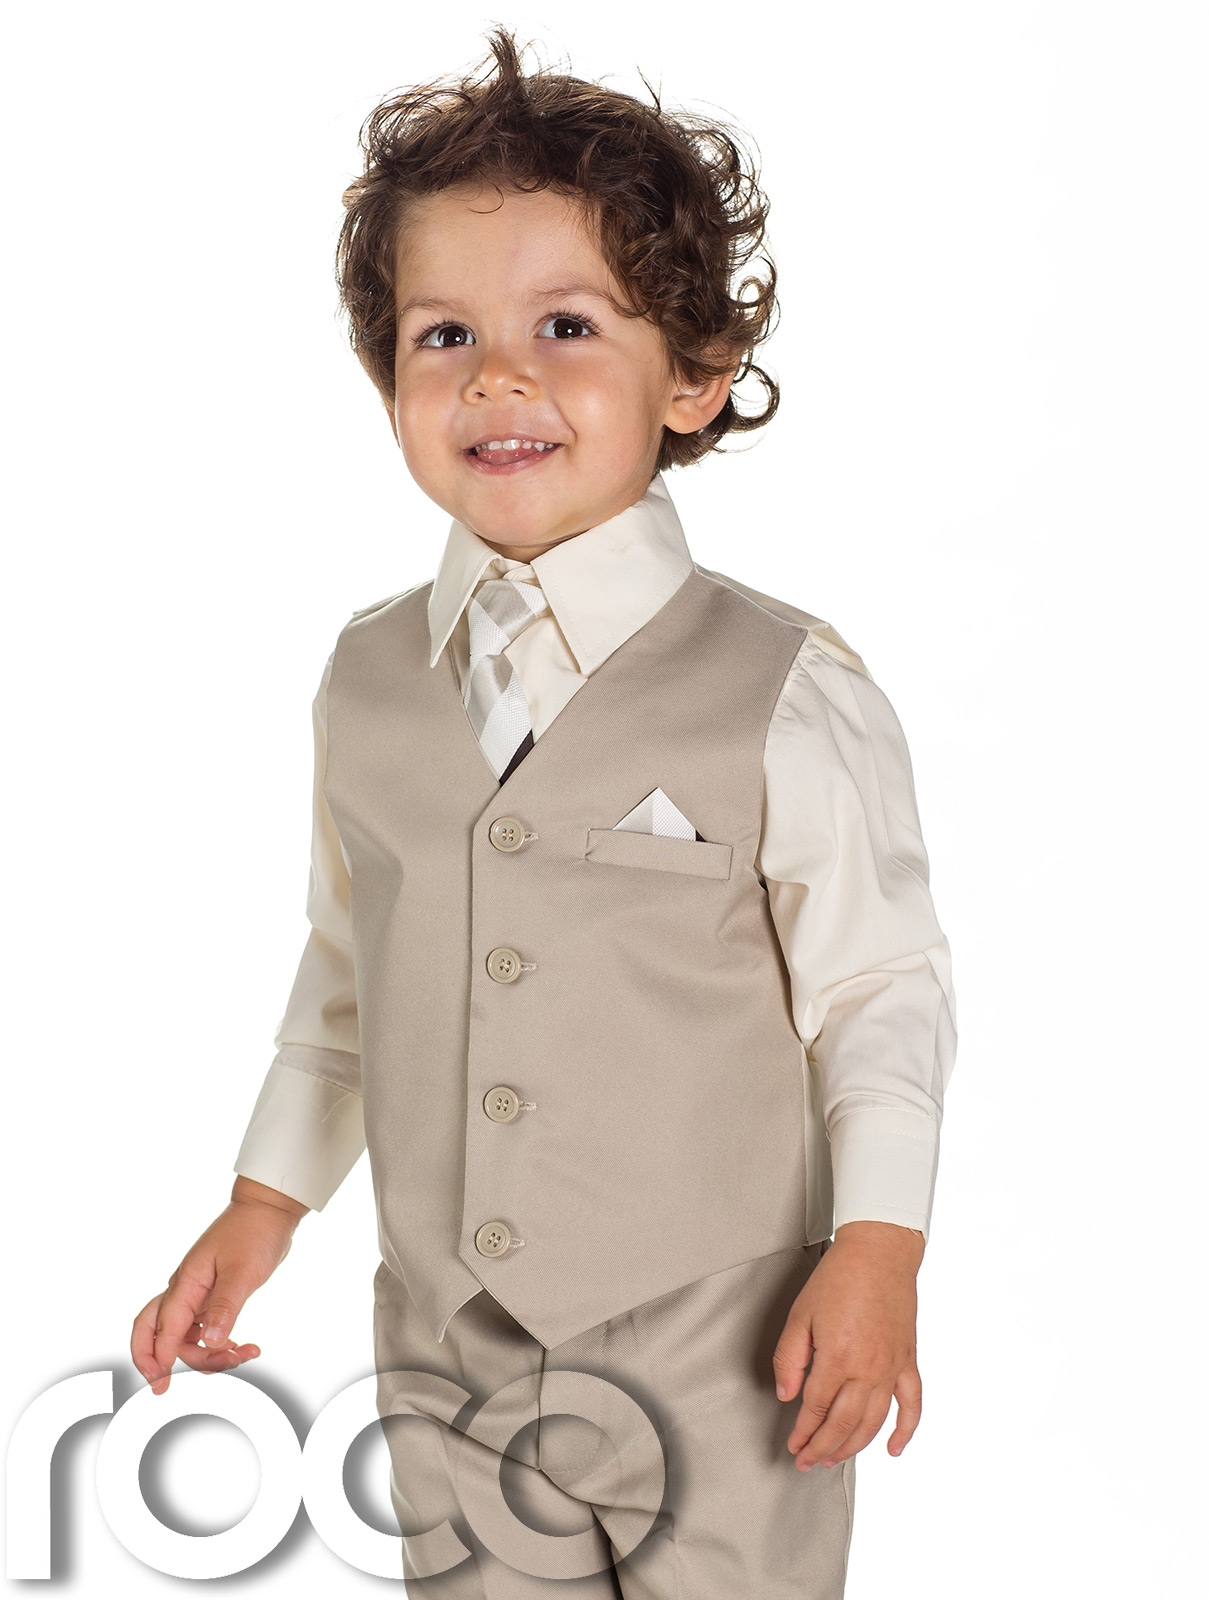 Looking for suits for your kids for a wedding? Need to dress your kids up for any formal event? Need a suit for a page boy? At tuxedosonline. com we have high quality suits for children of any size, from toddler to teens. We have nice suit packages which include a shirt, coat, pants, and tie, or you can buy suit separates for your little ones.